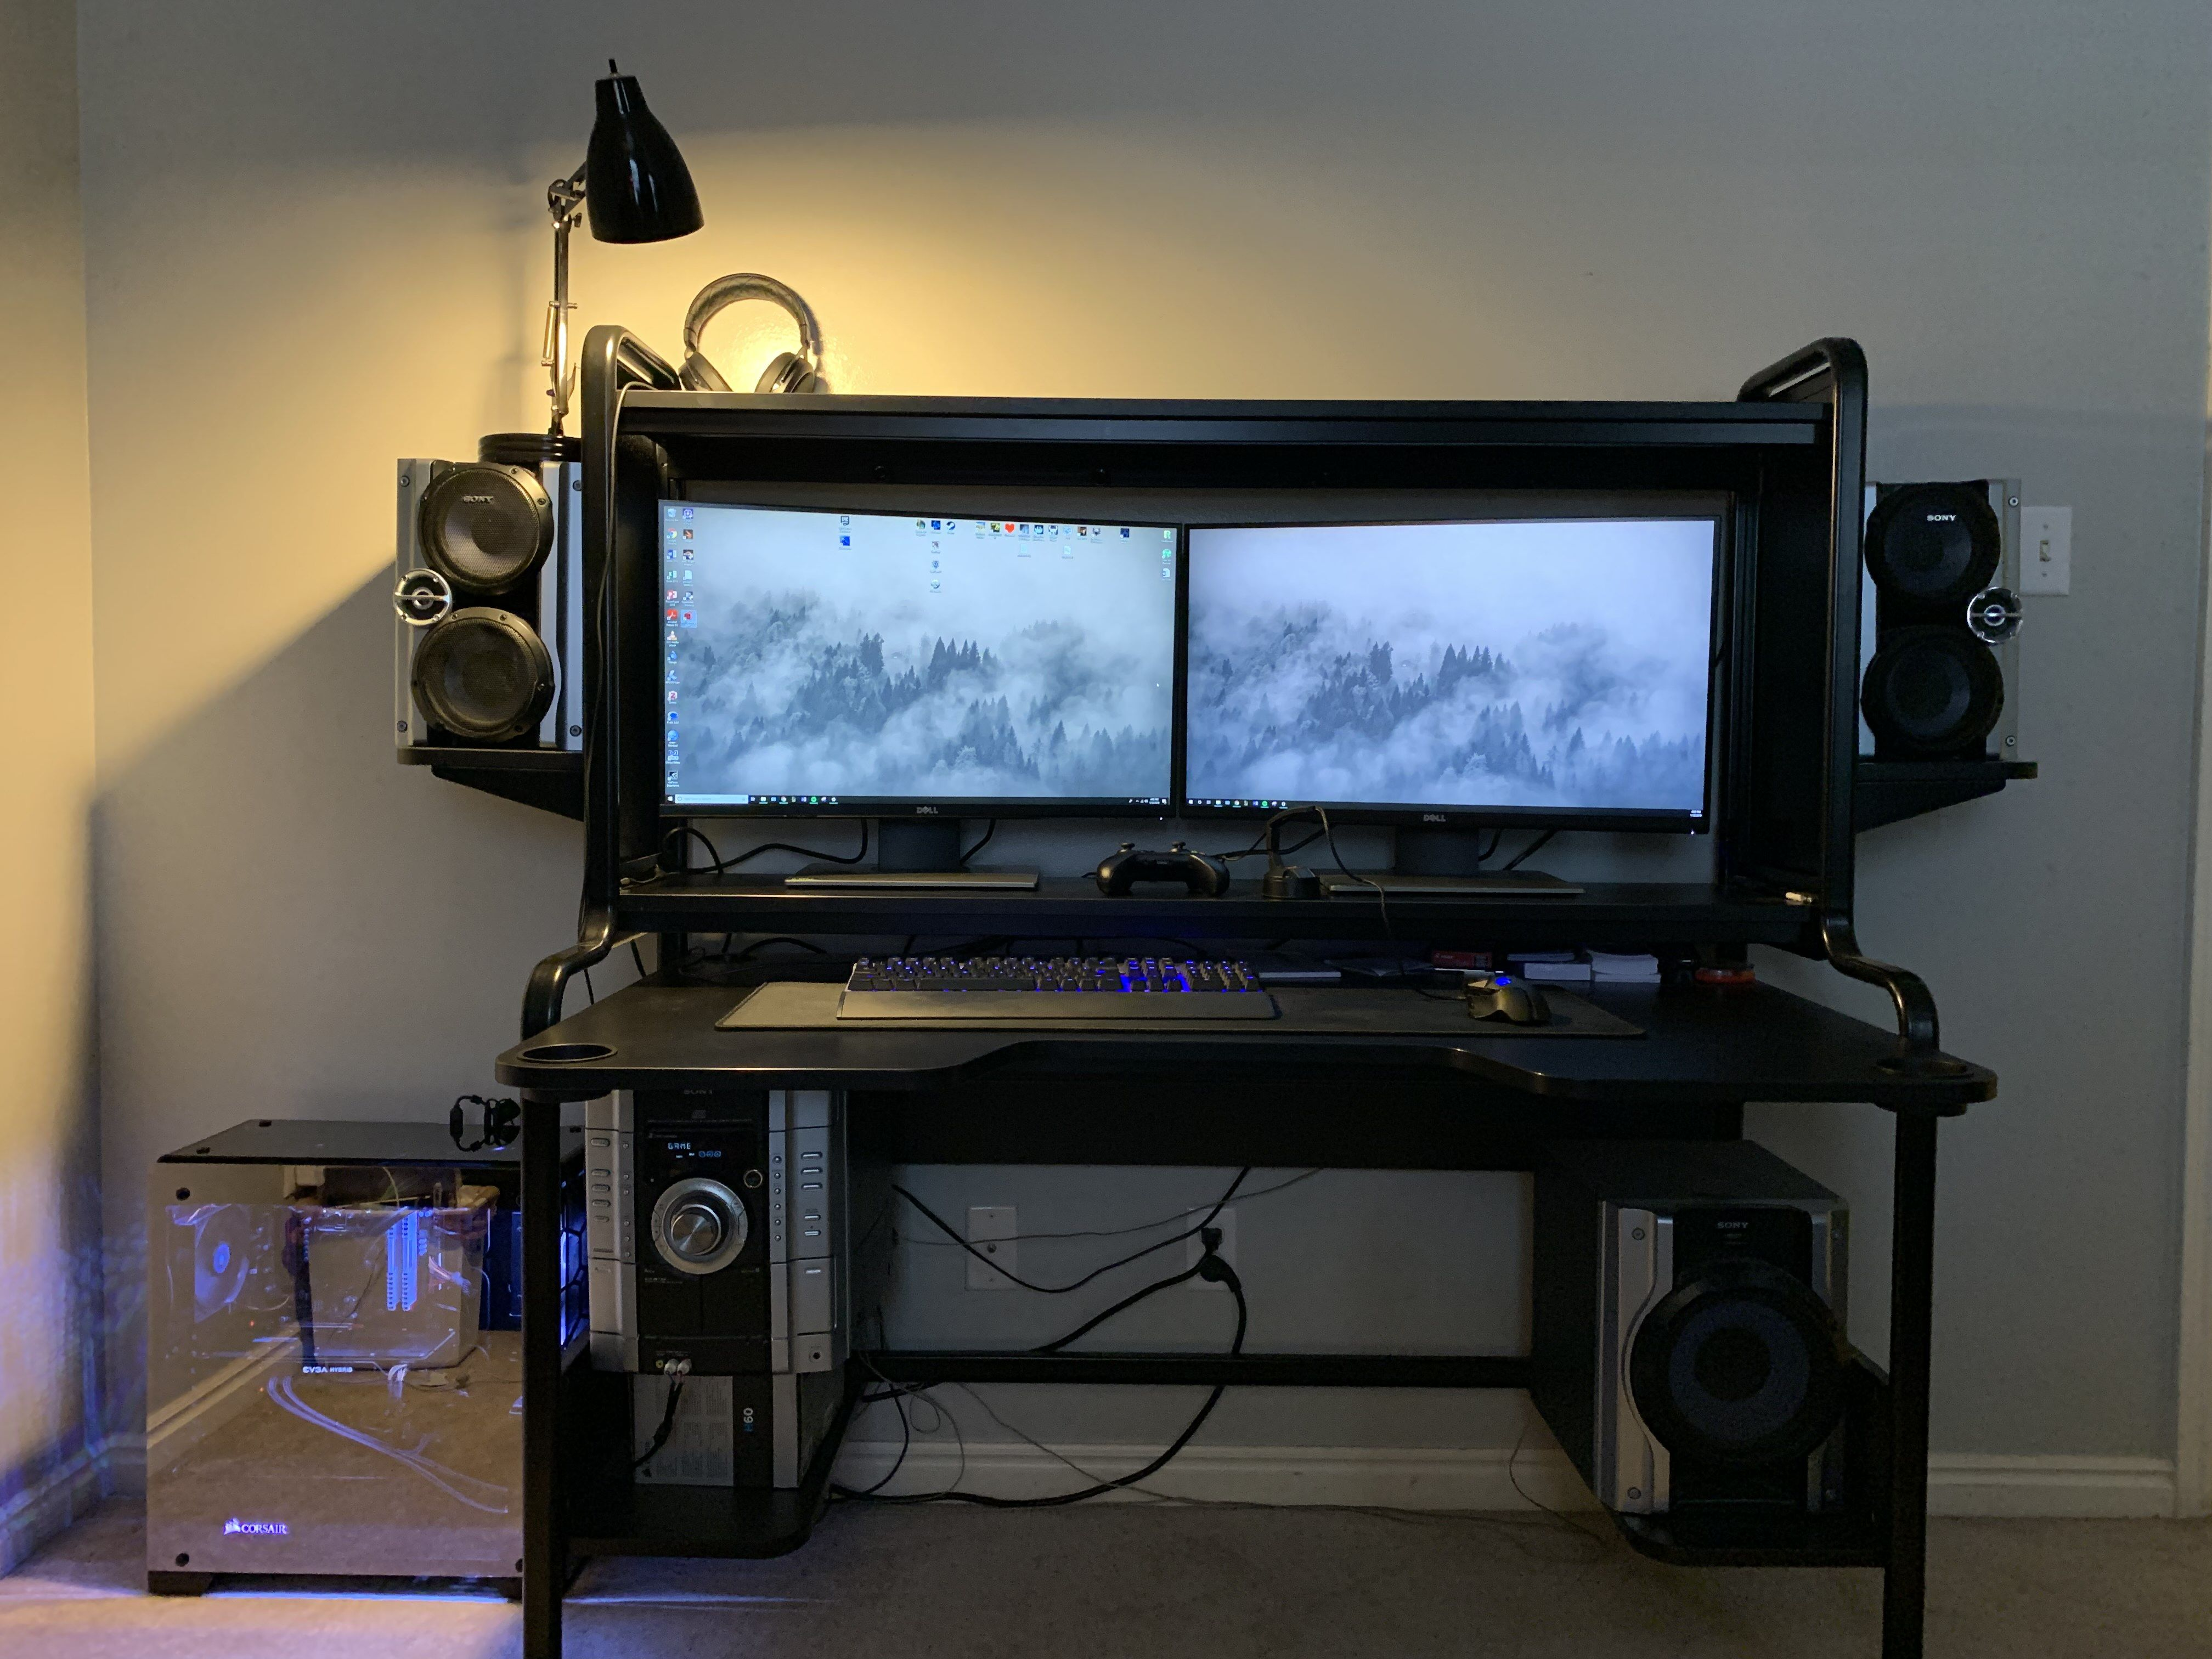 I Ll Be Honest I M Super Happy With The Ikea Fredde Desk Couldn T Be More Delighted With My Setup Gaming Desk Video Game Rooms Computer Gaming Room